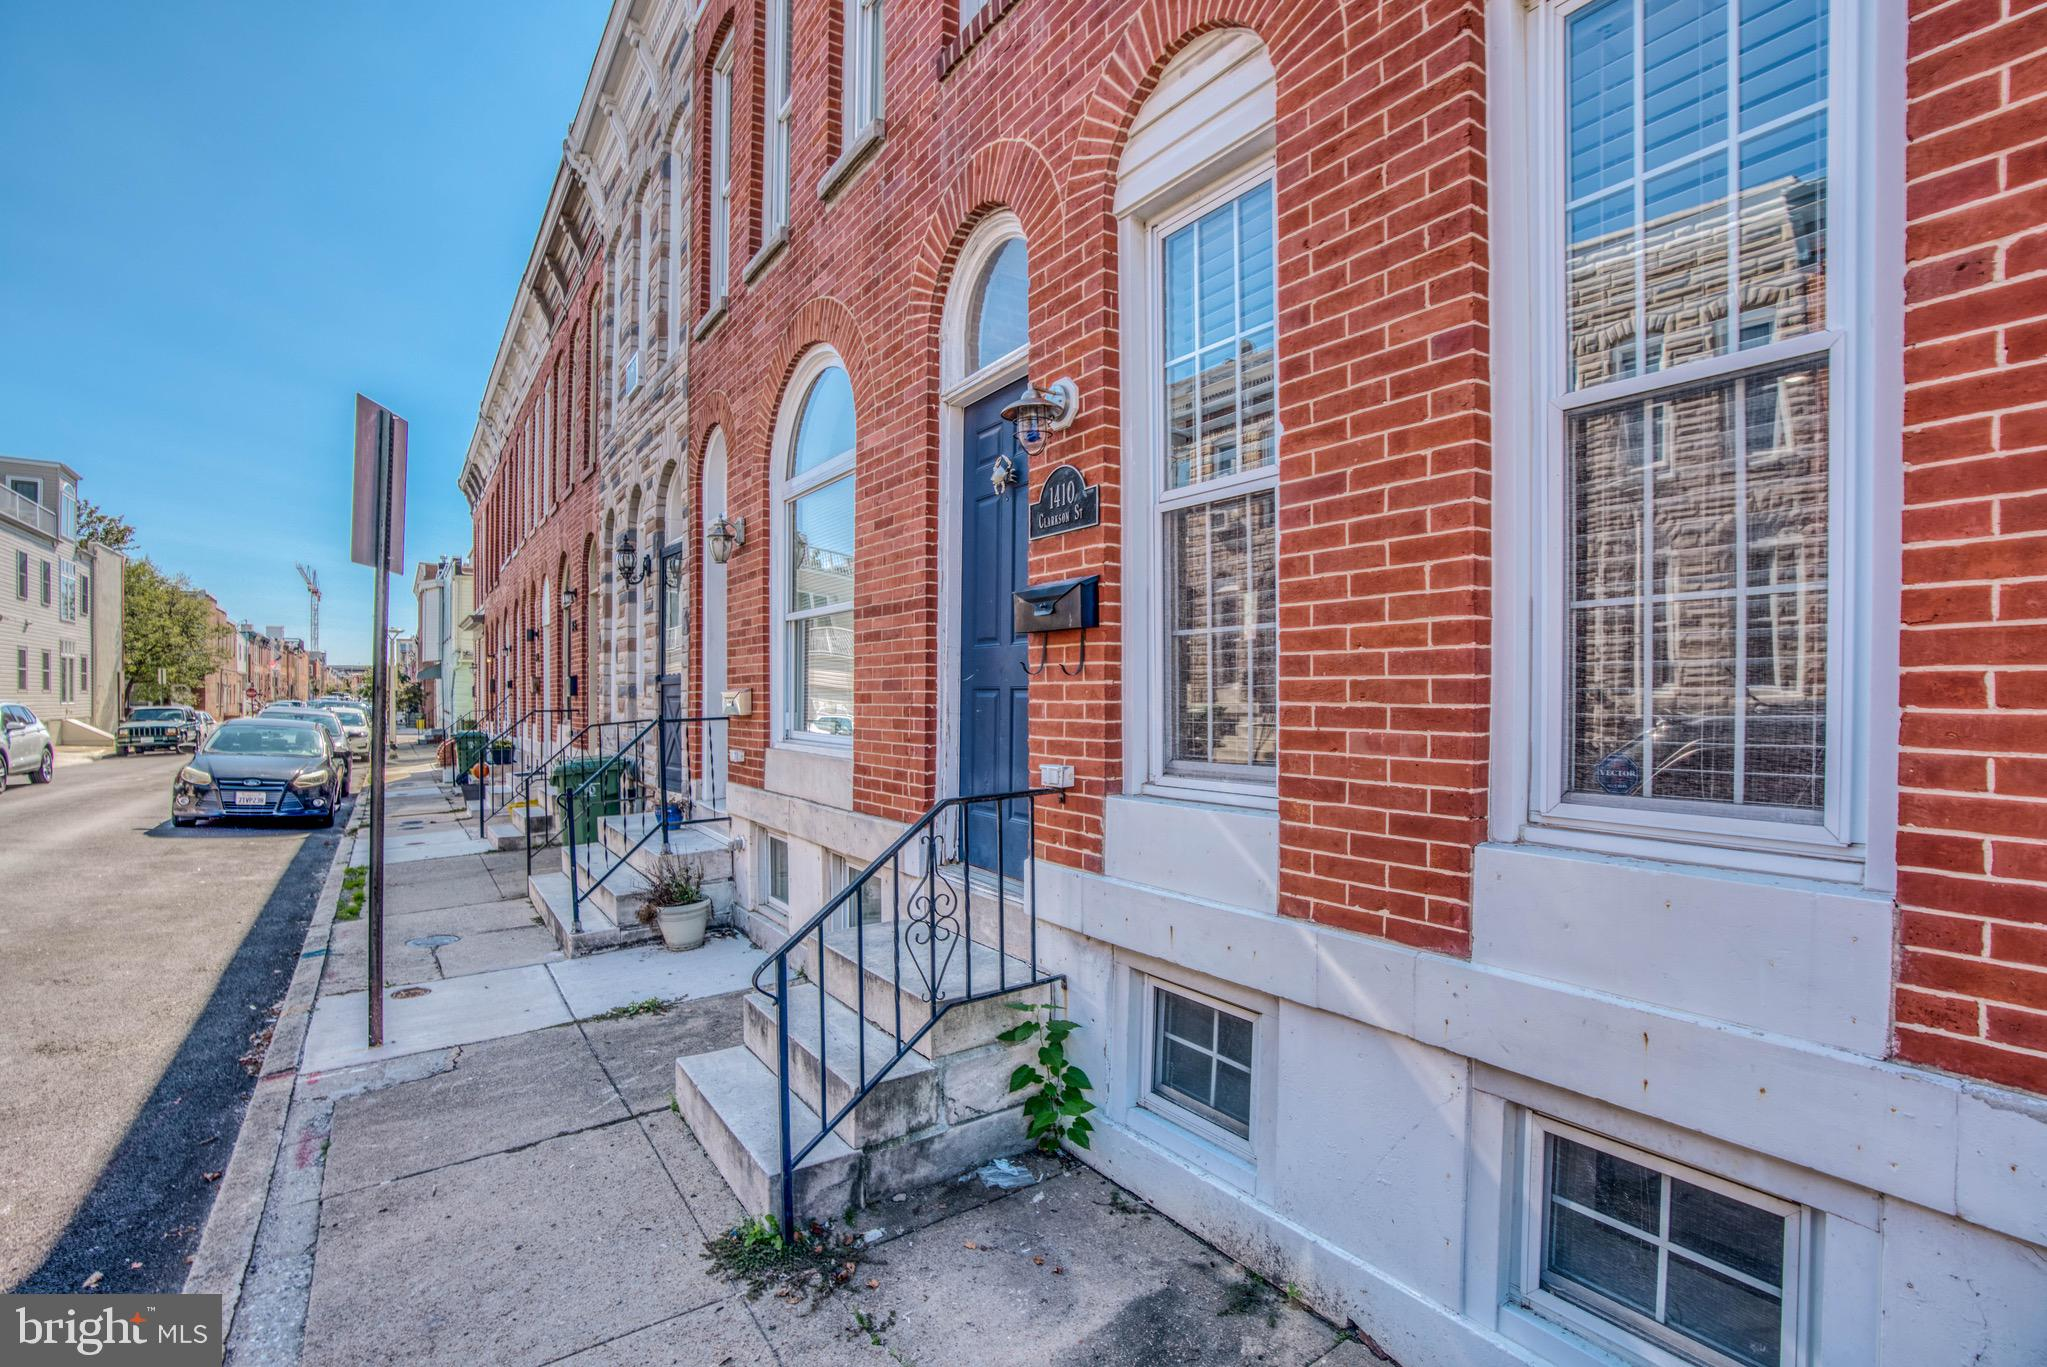 1410 Clarkson St, Baltimore, MD, 21230